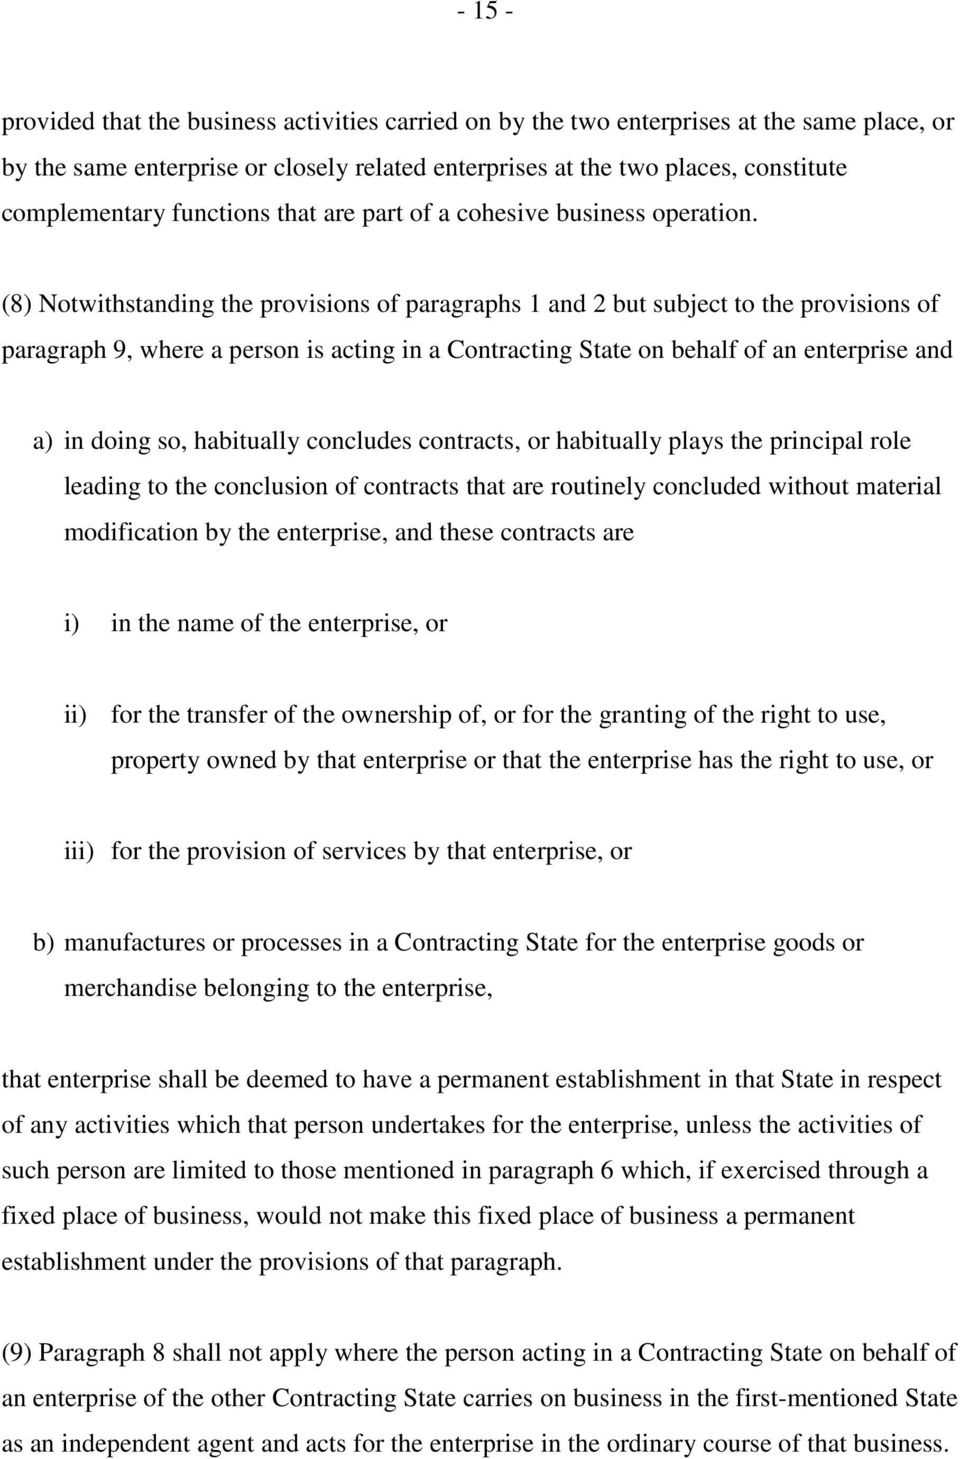 (8) Notwithstanding the provisions of paragraphs 1 and 2 but subject to the provisions of paragraph 9, where a person is acting in a Contracting State on behalf of an enterprise and a) in doing so,